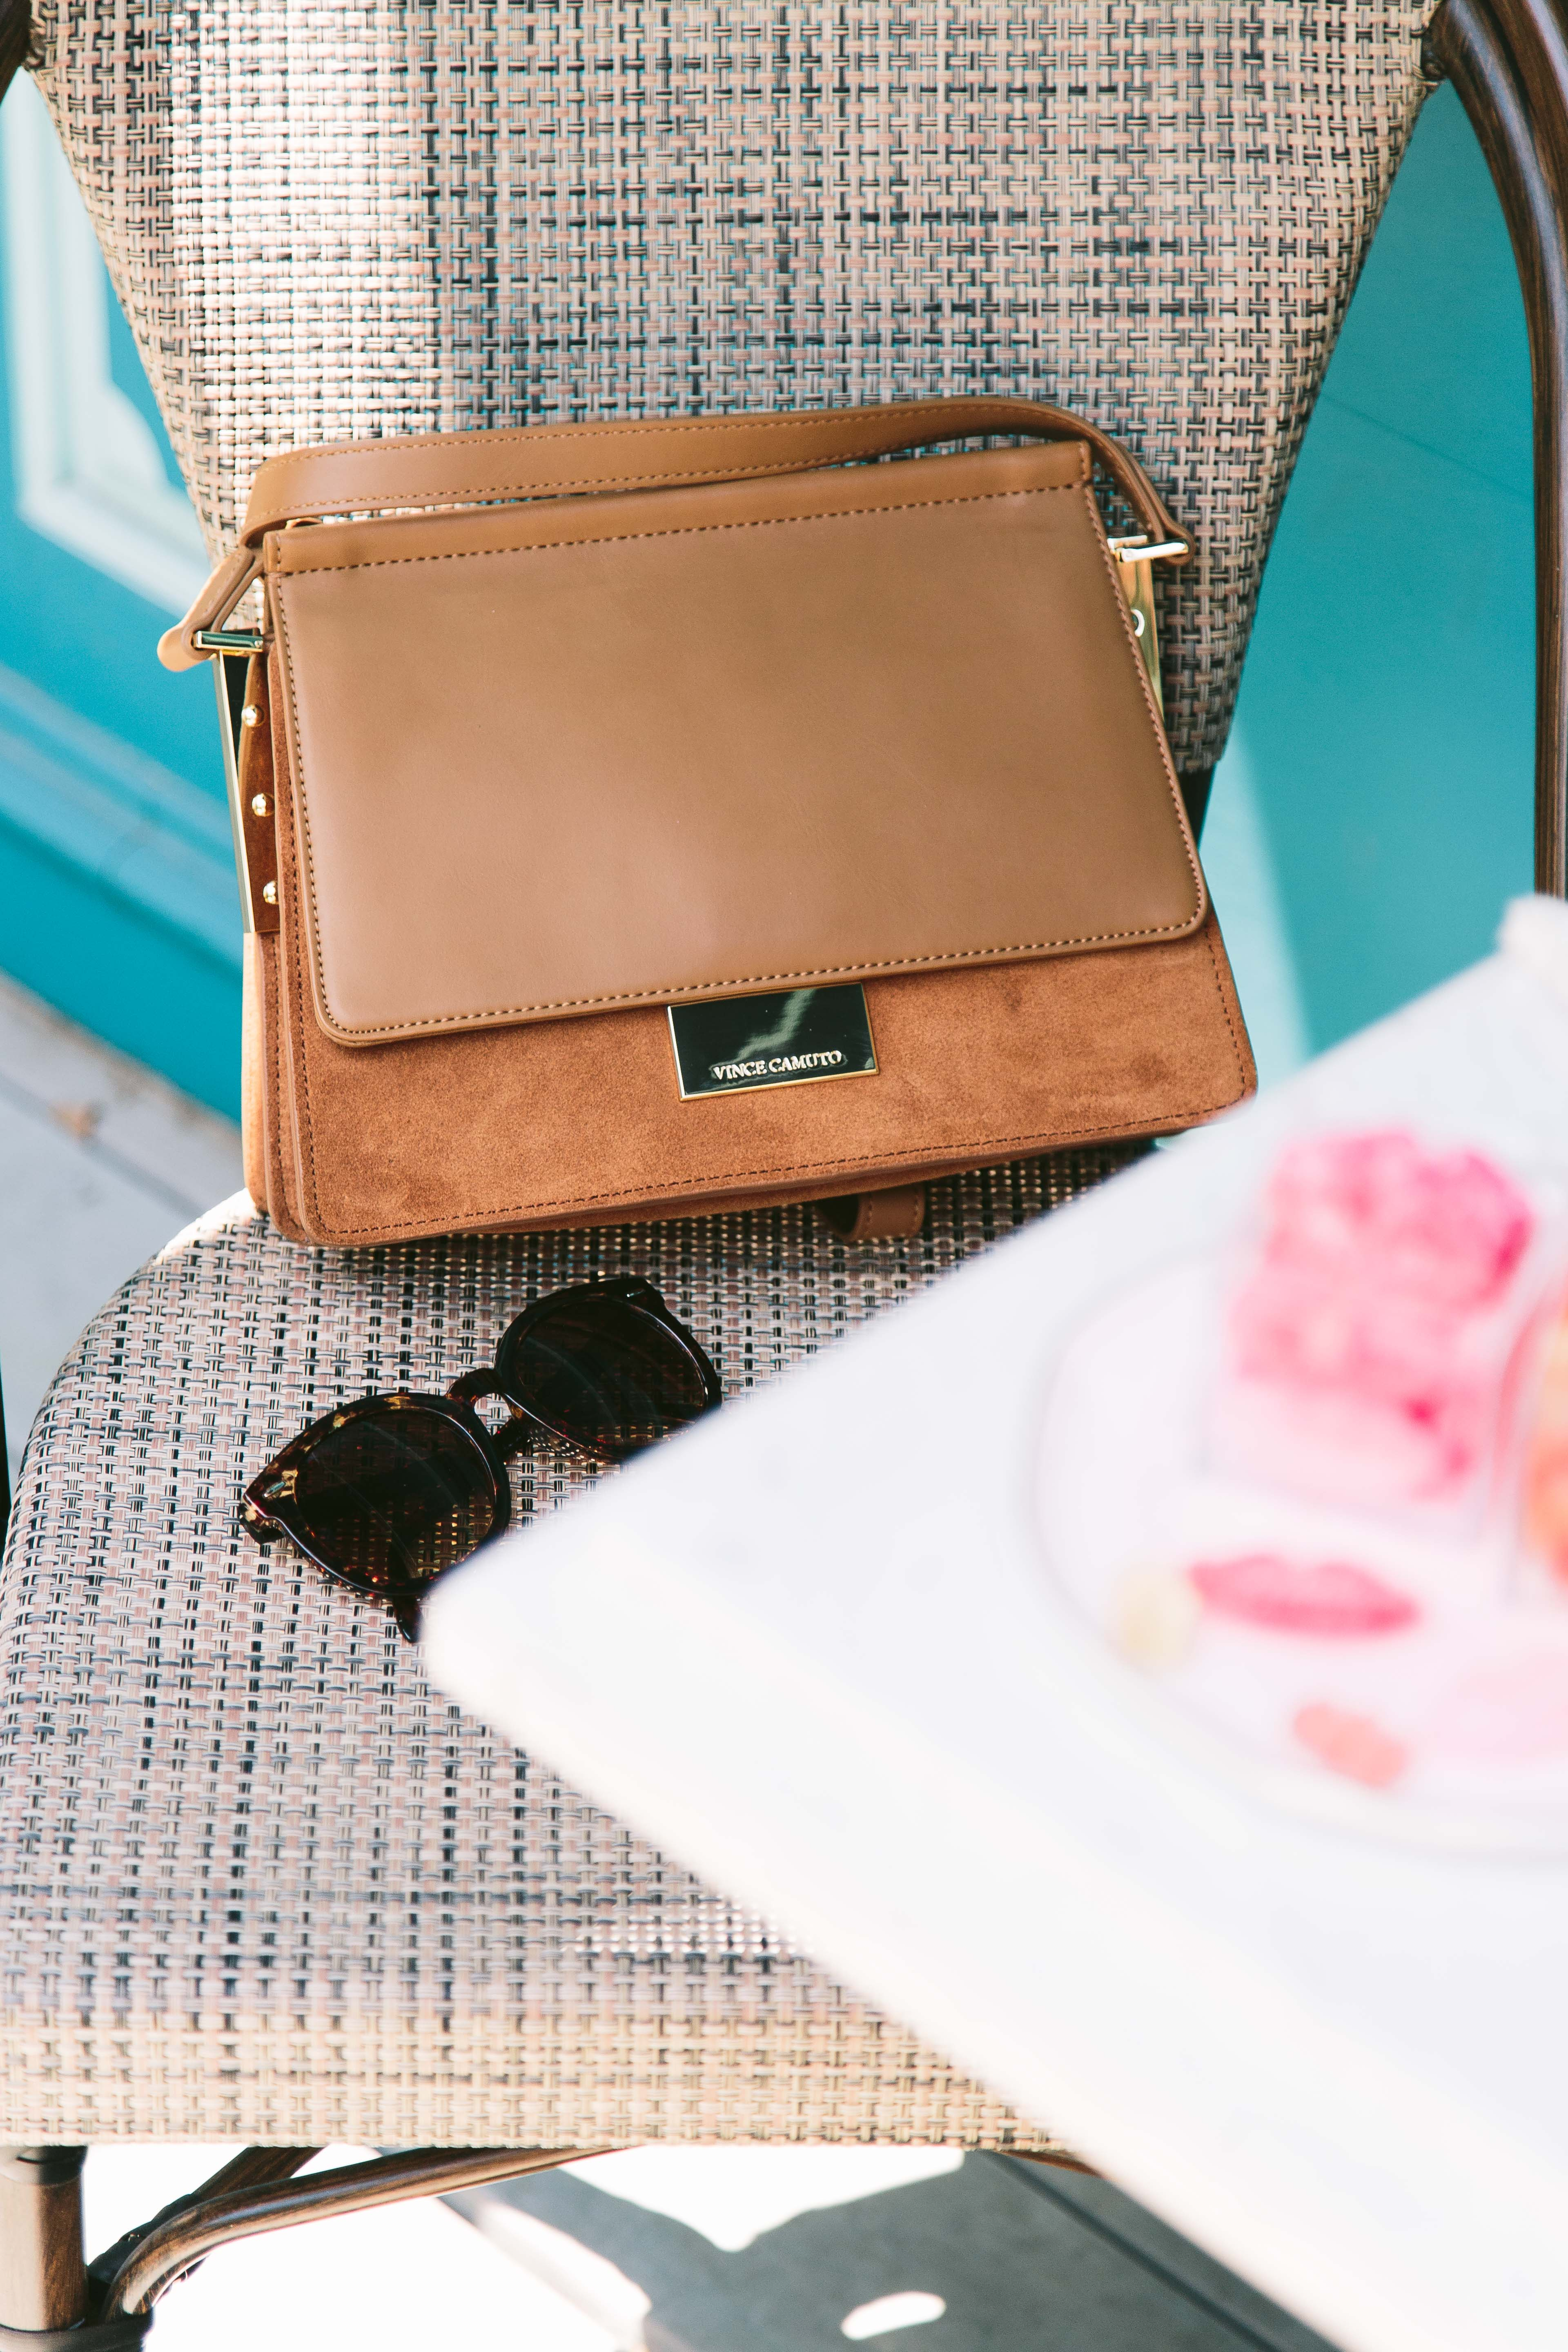 Vince Camuto purse Nordstrom